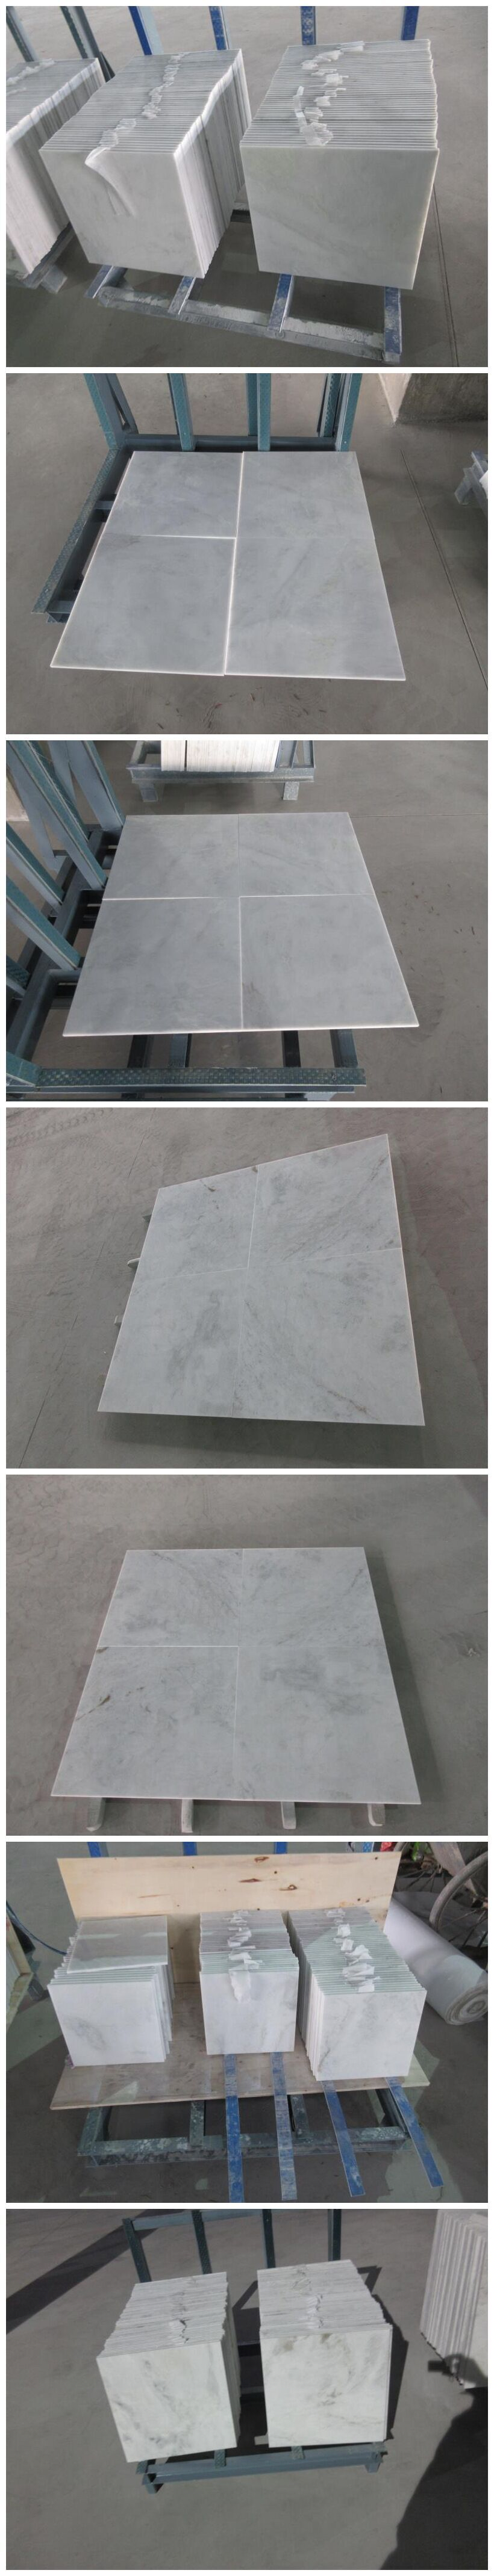 Castro white marble slabs and tiles. B